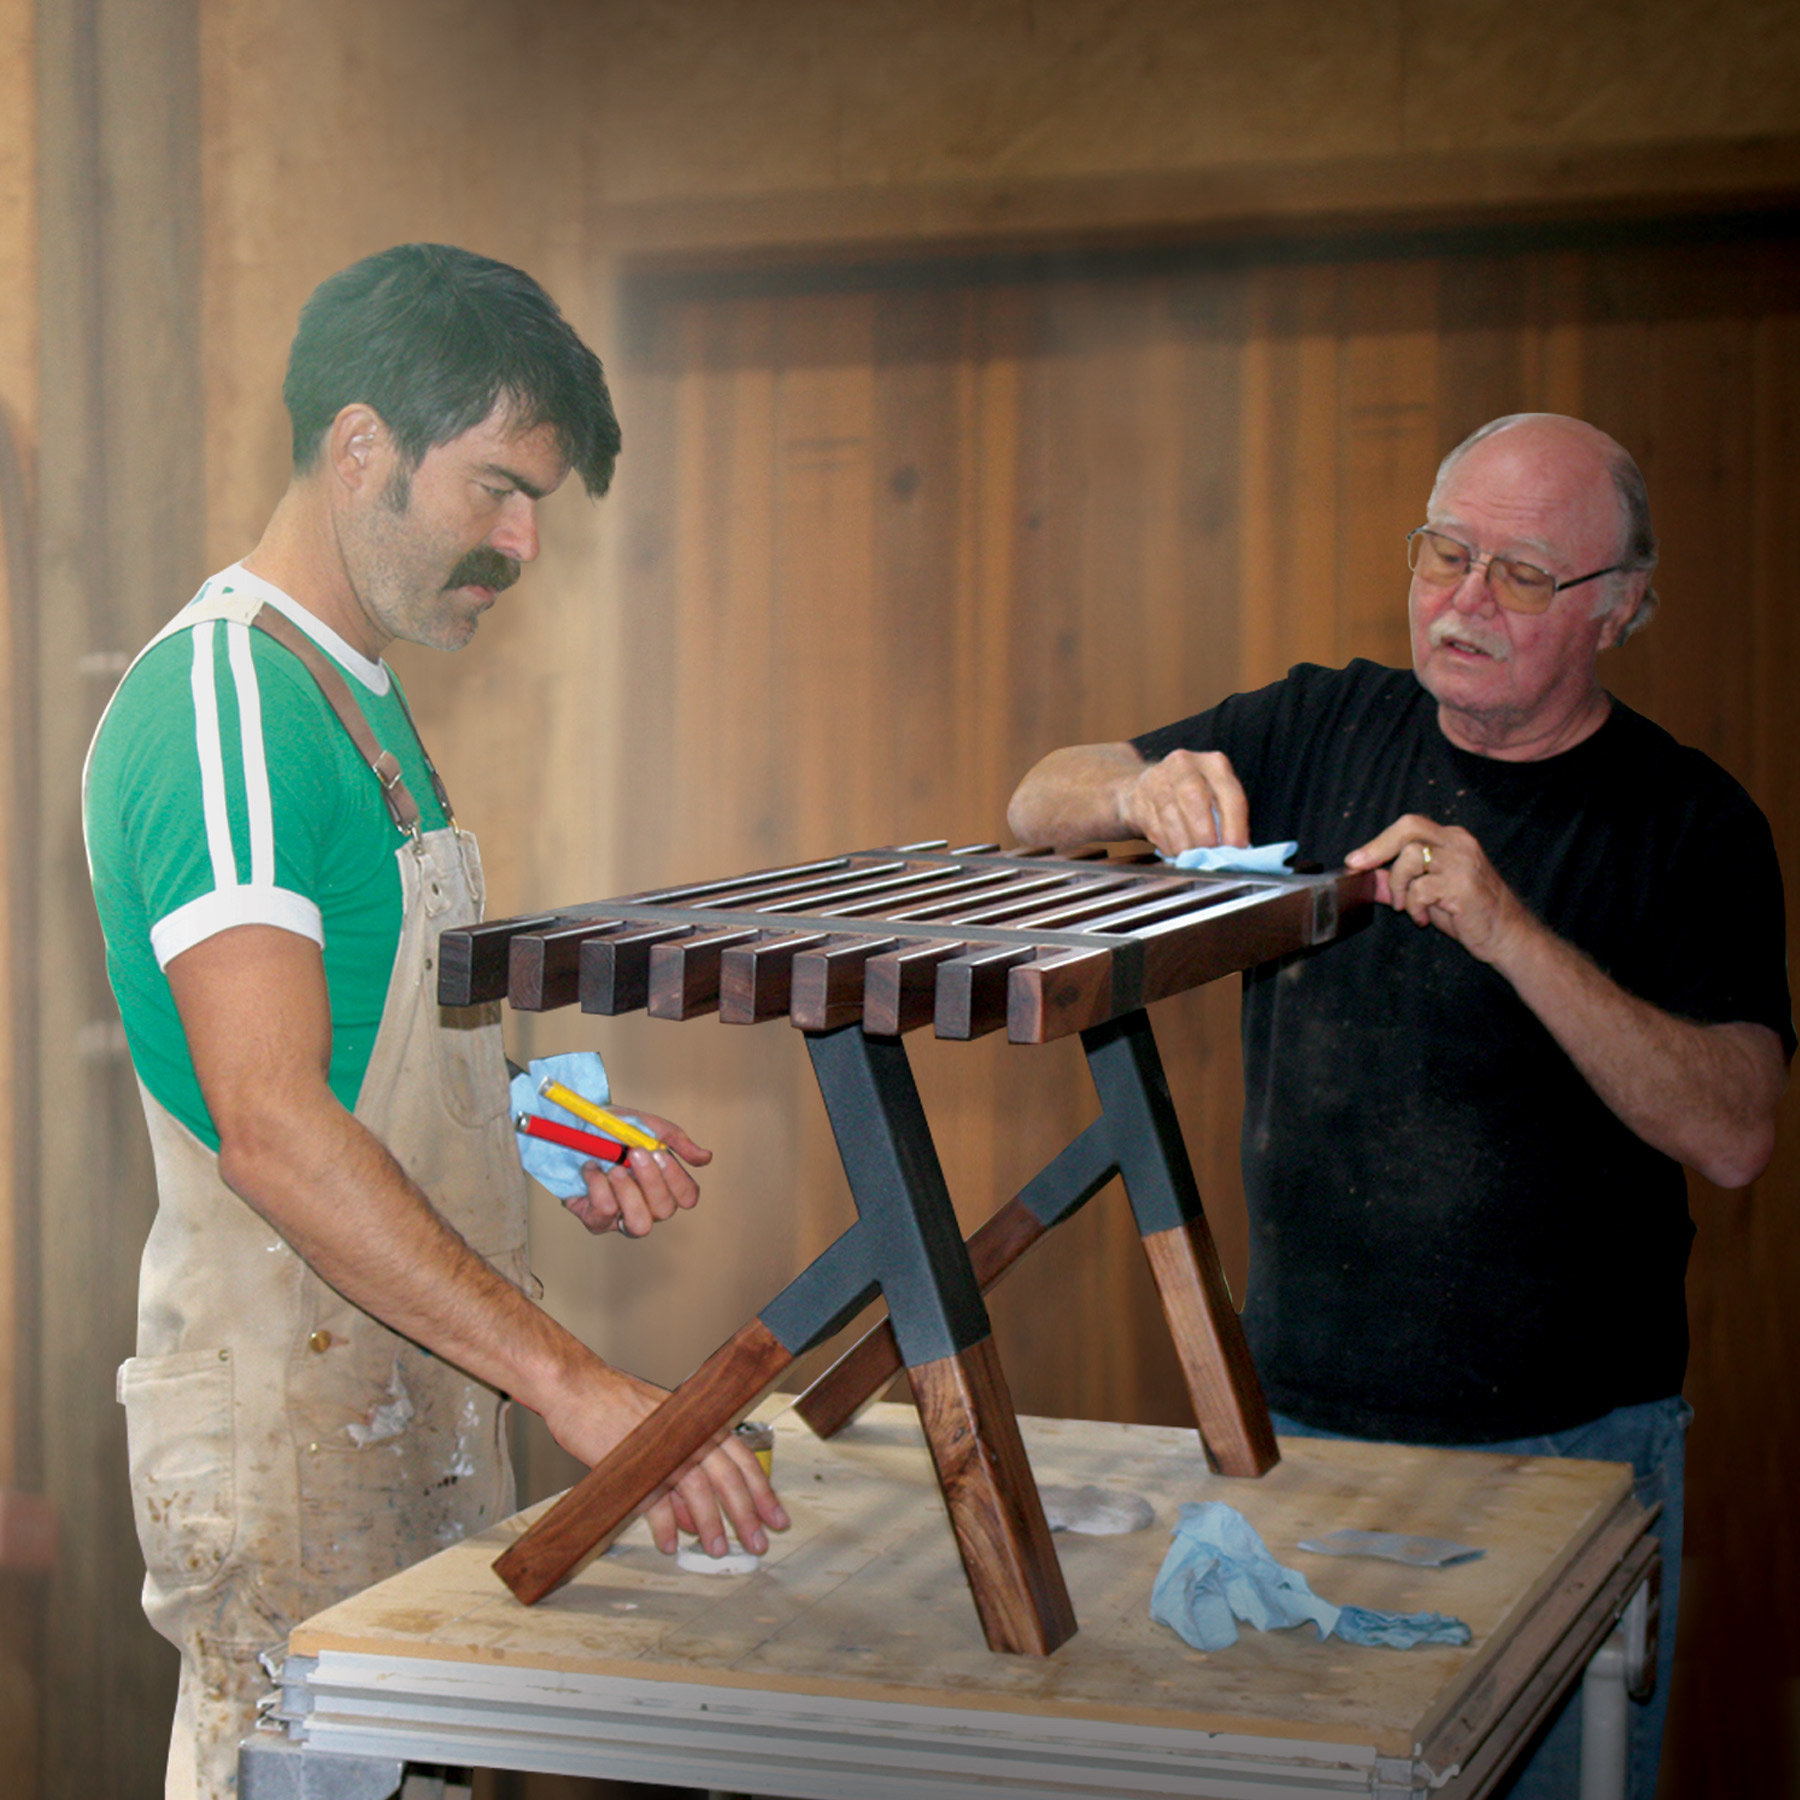 Bruce puts the final touches on his custom bench as Jory looks on.